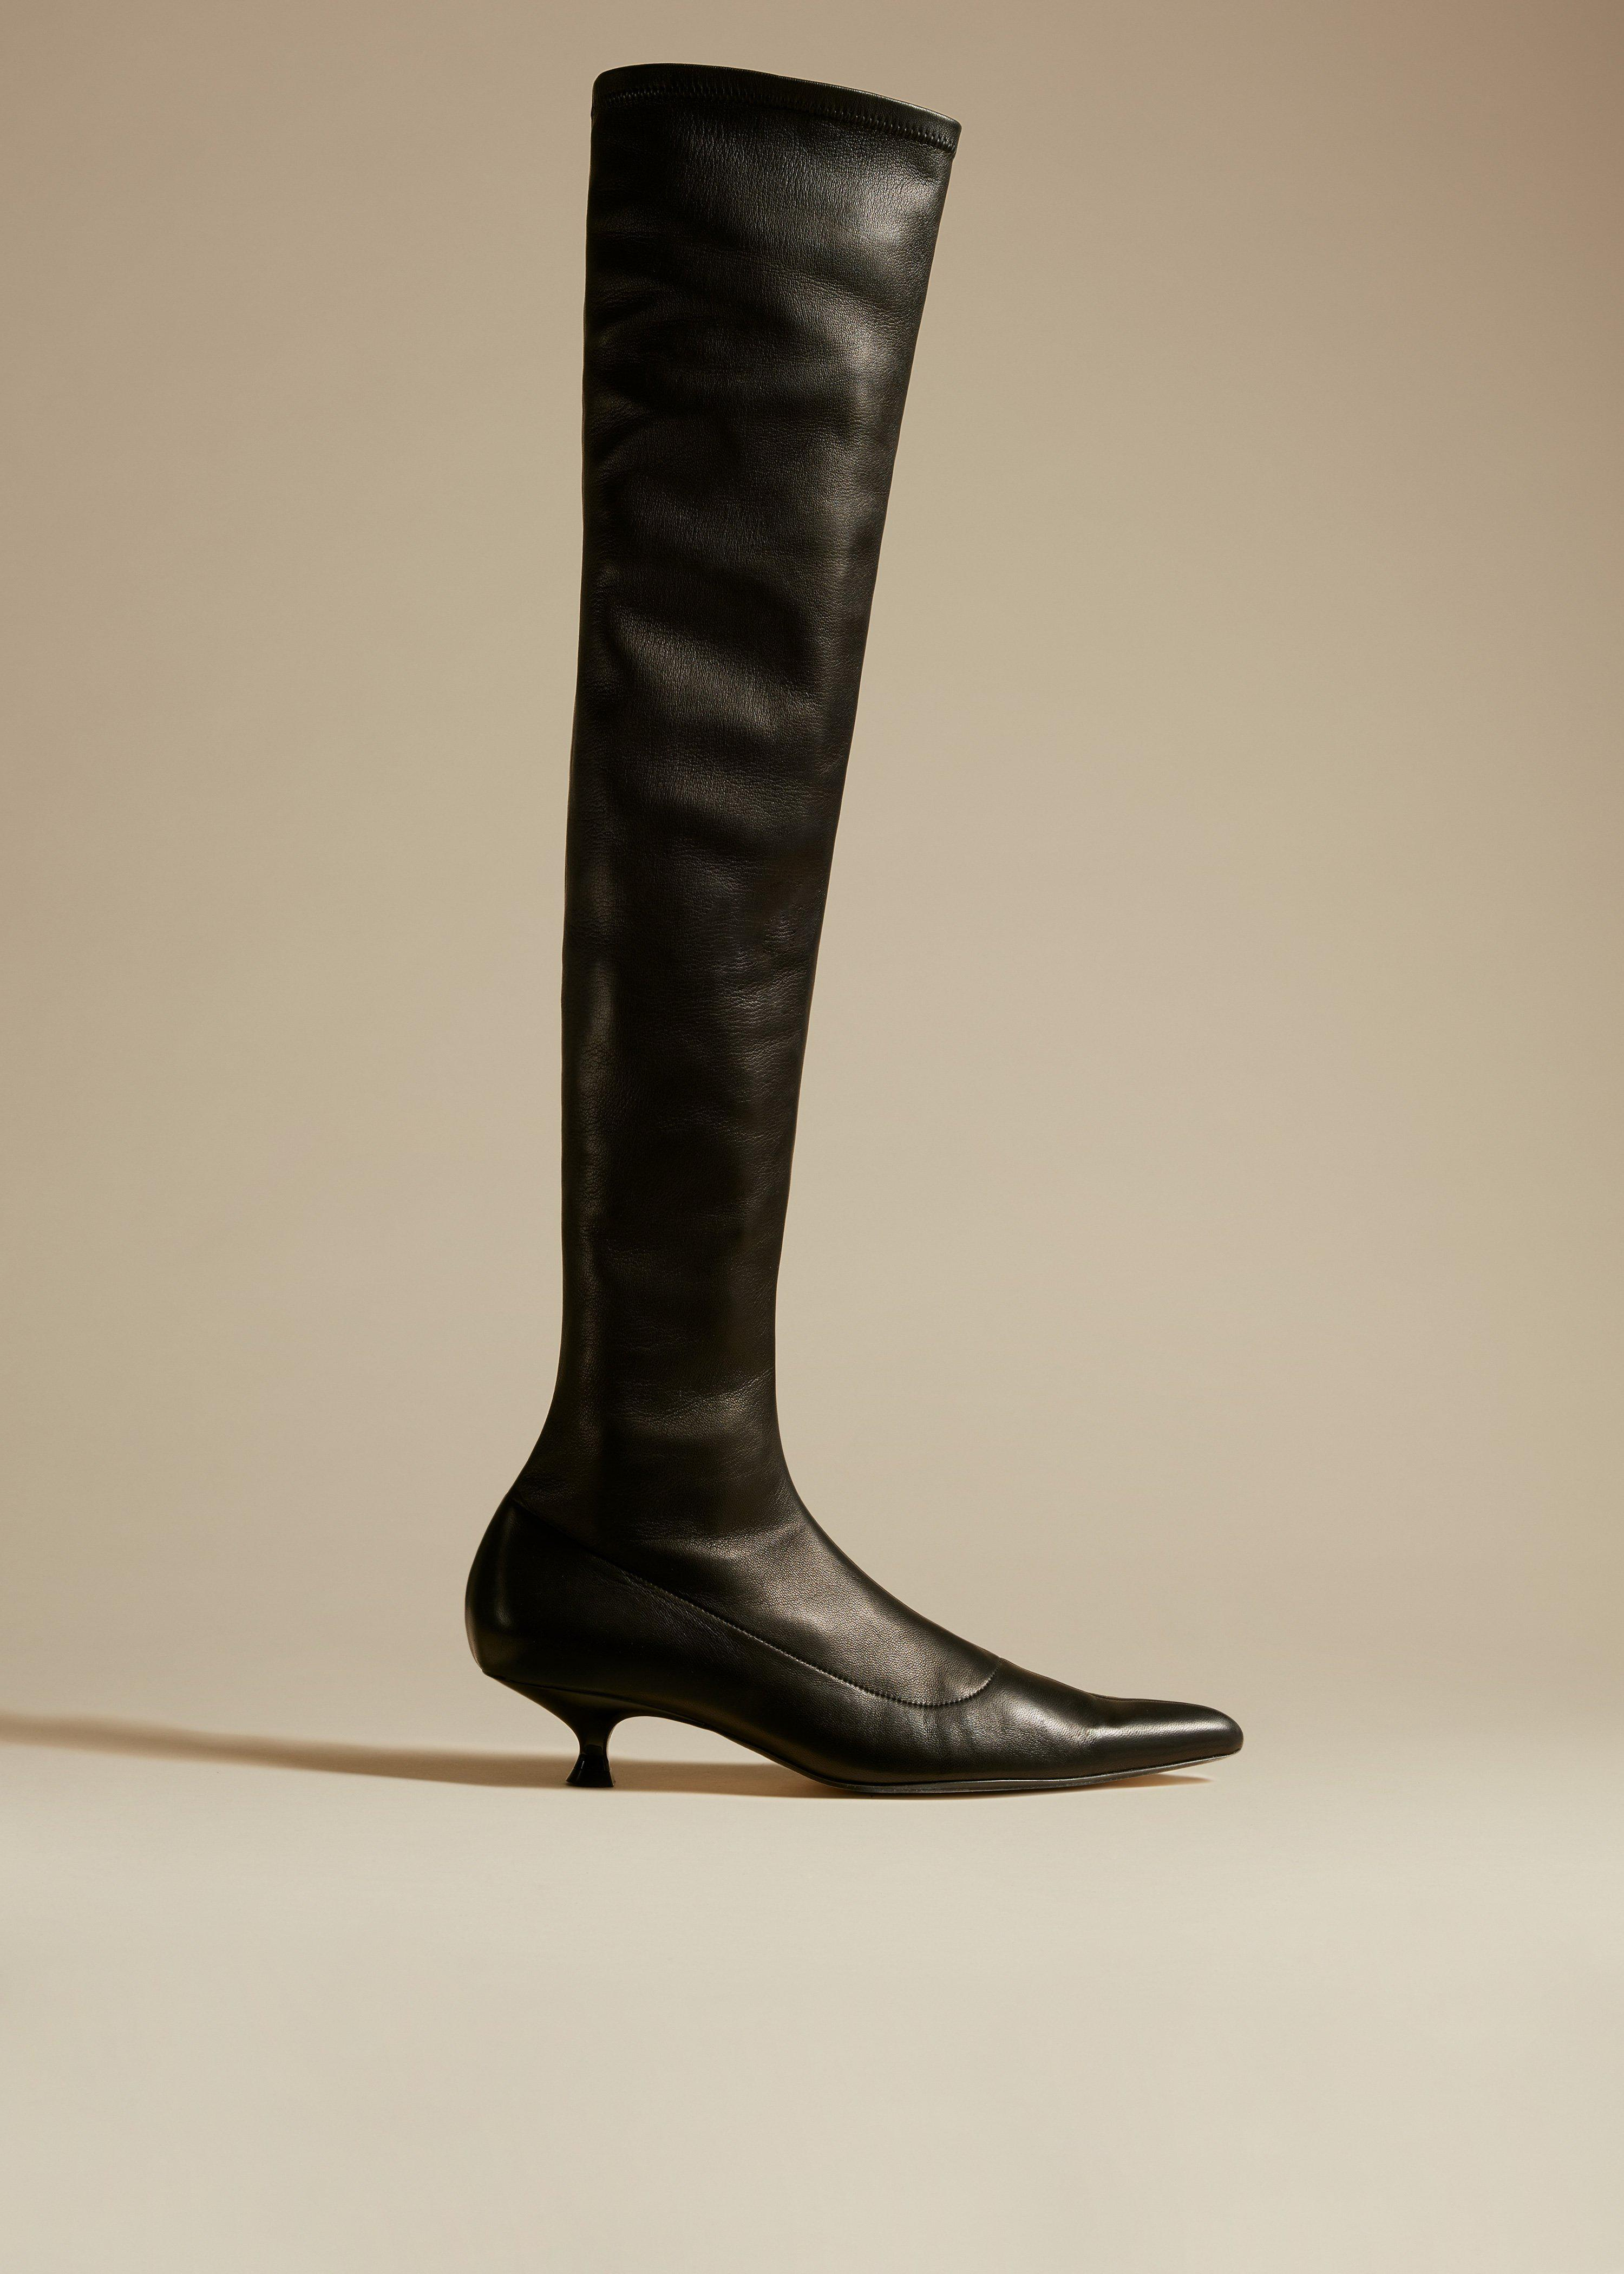 The Volos Over-the-Knee Boot in Black Leather